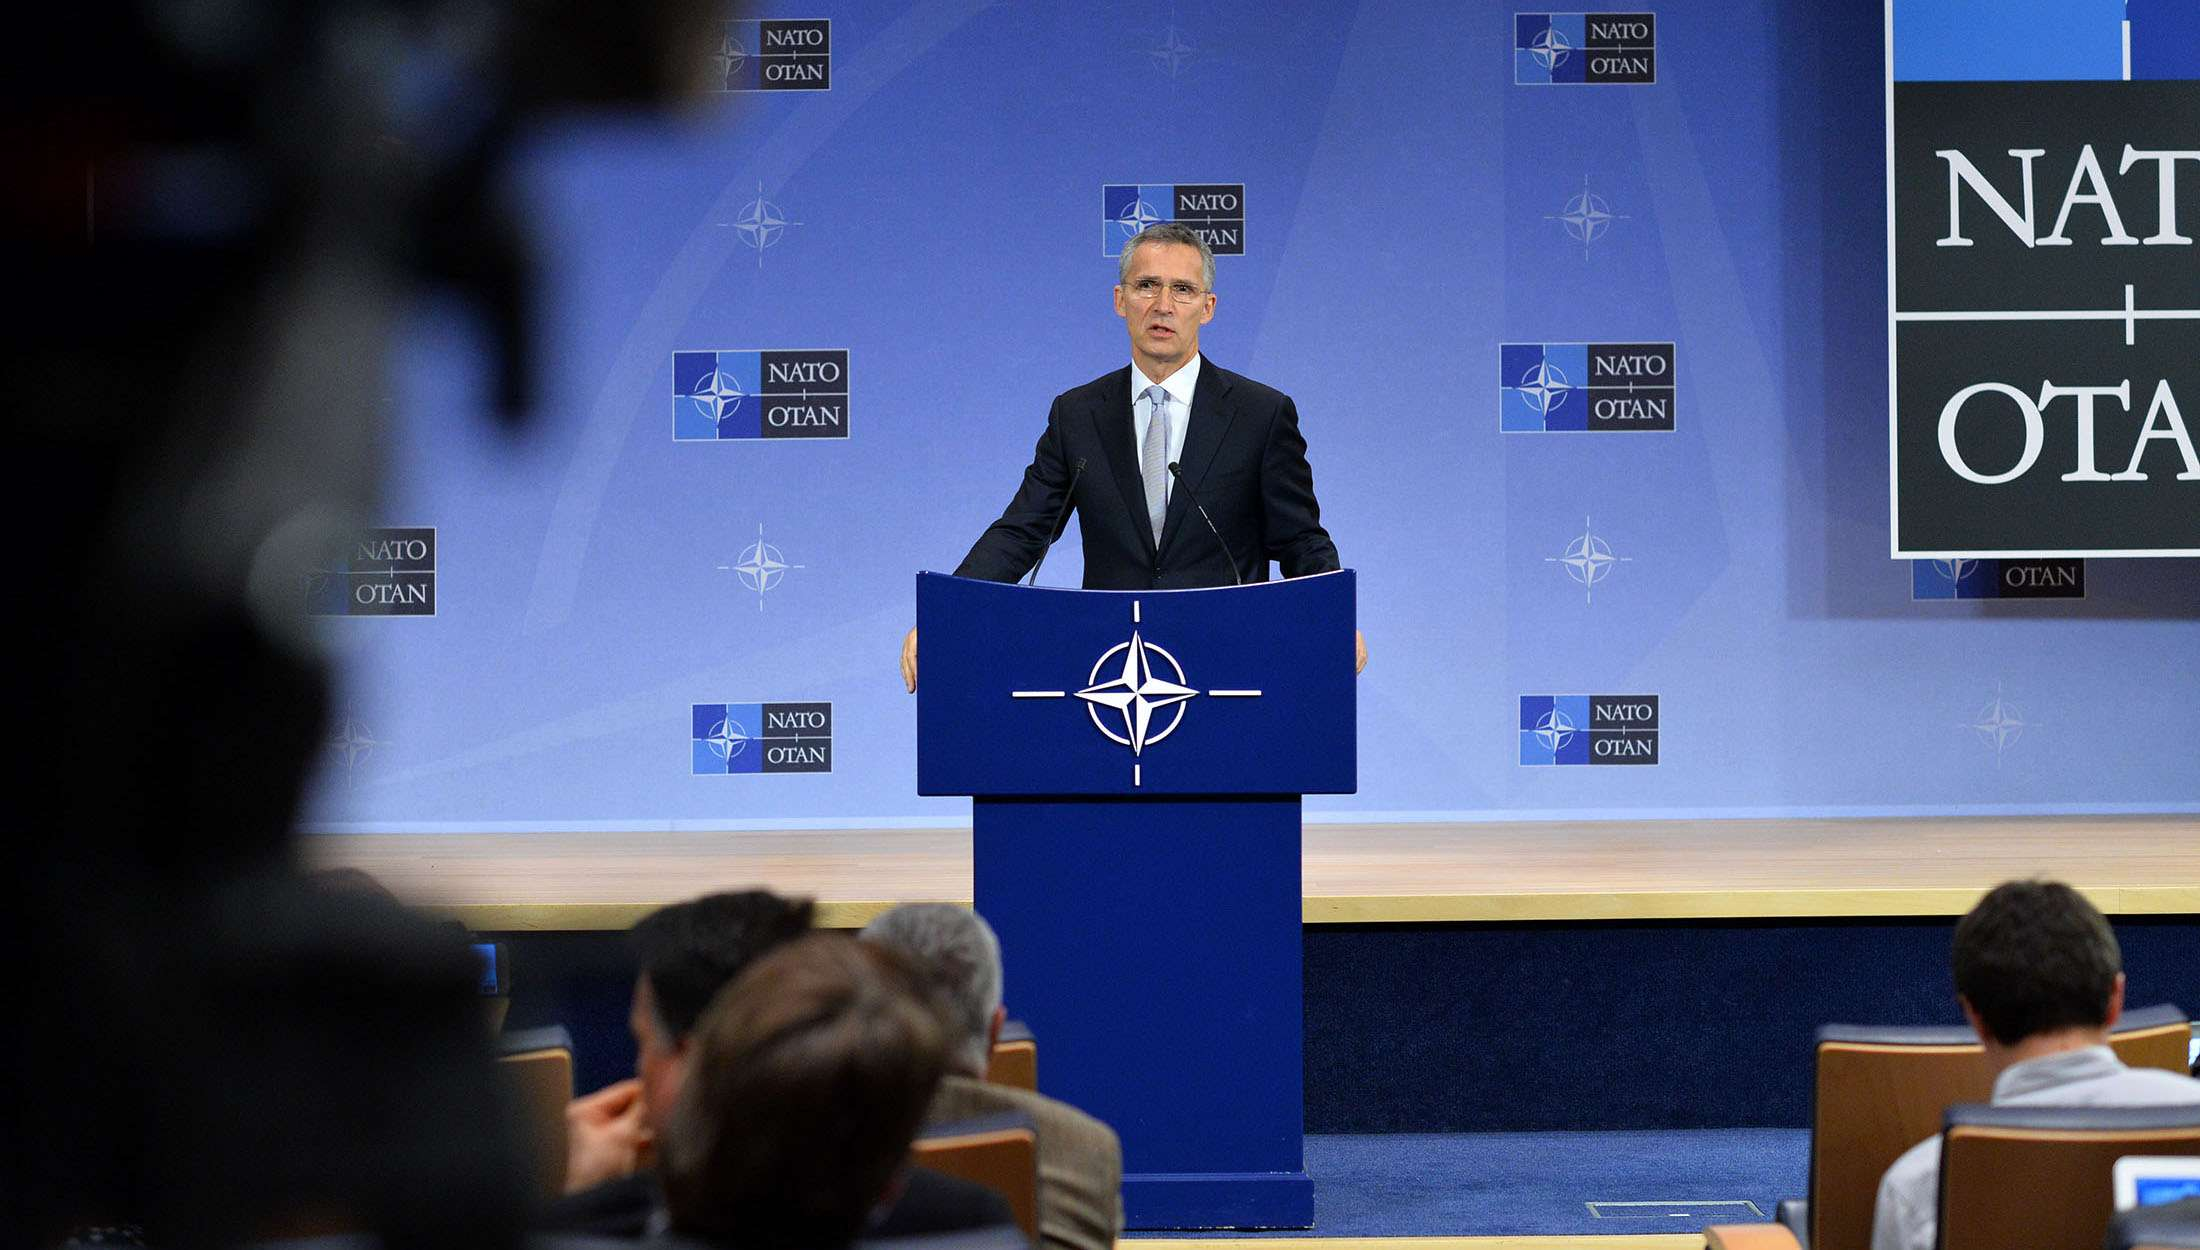 #Factoftheday: NATO will enhance its contribution to the Global coalition to counter ISIS